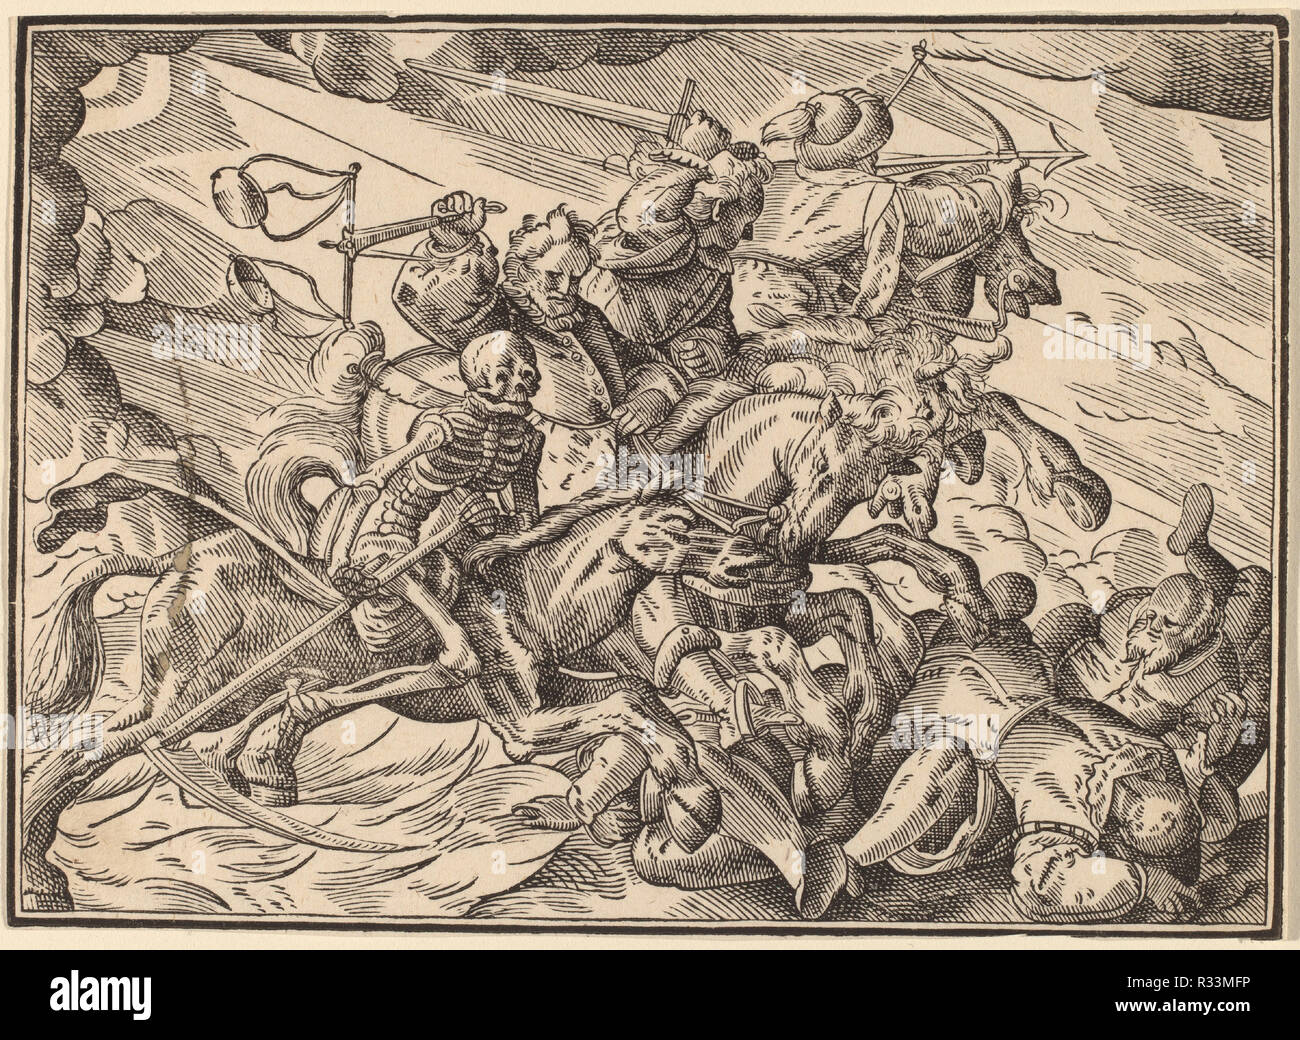 The Four Horsemen of the Apocalypse  Dated: published 1630